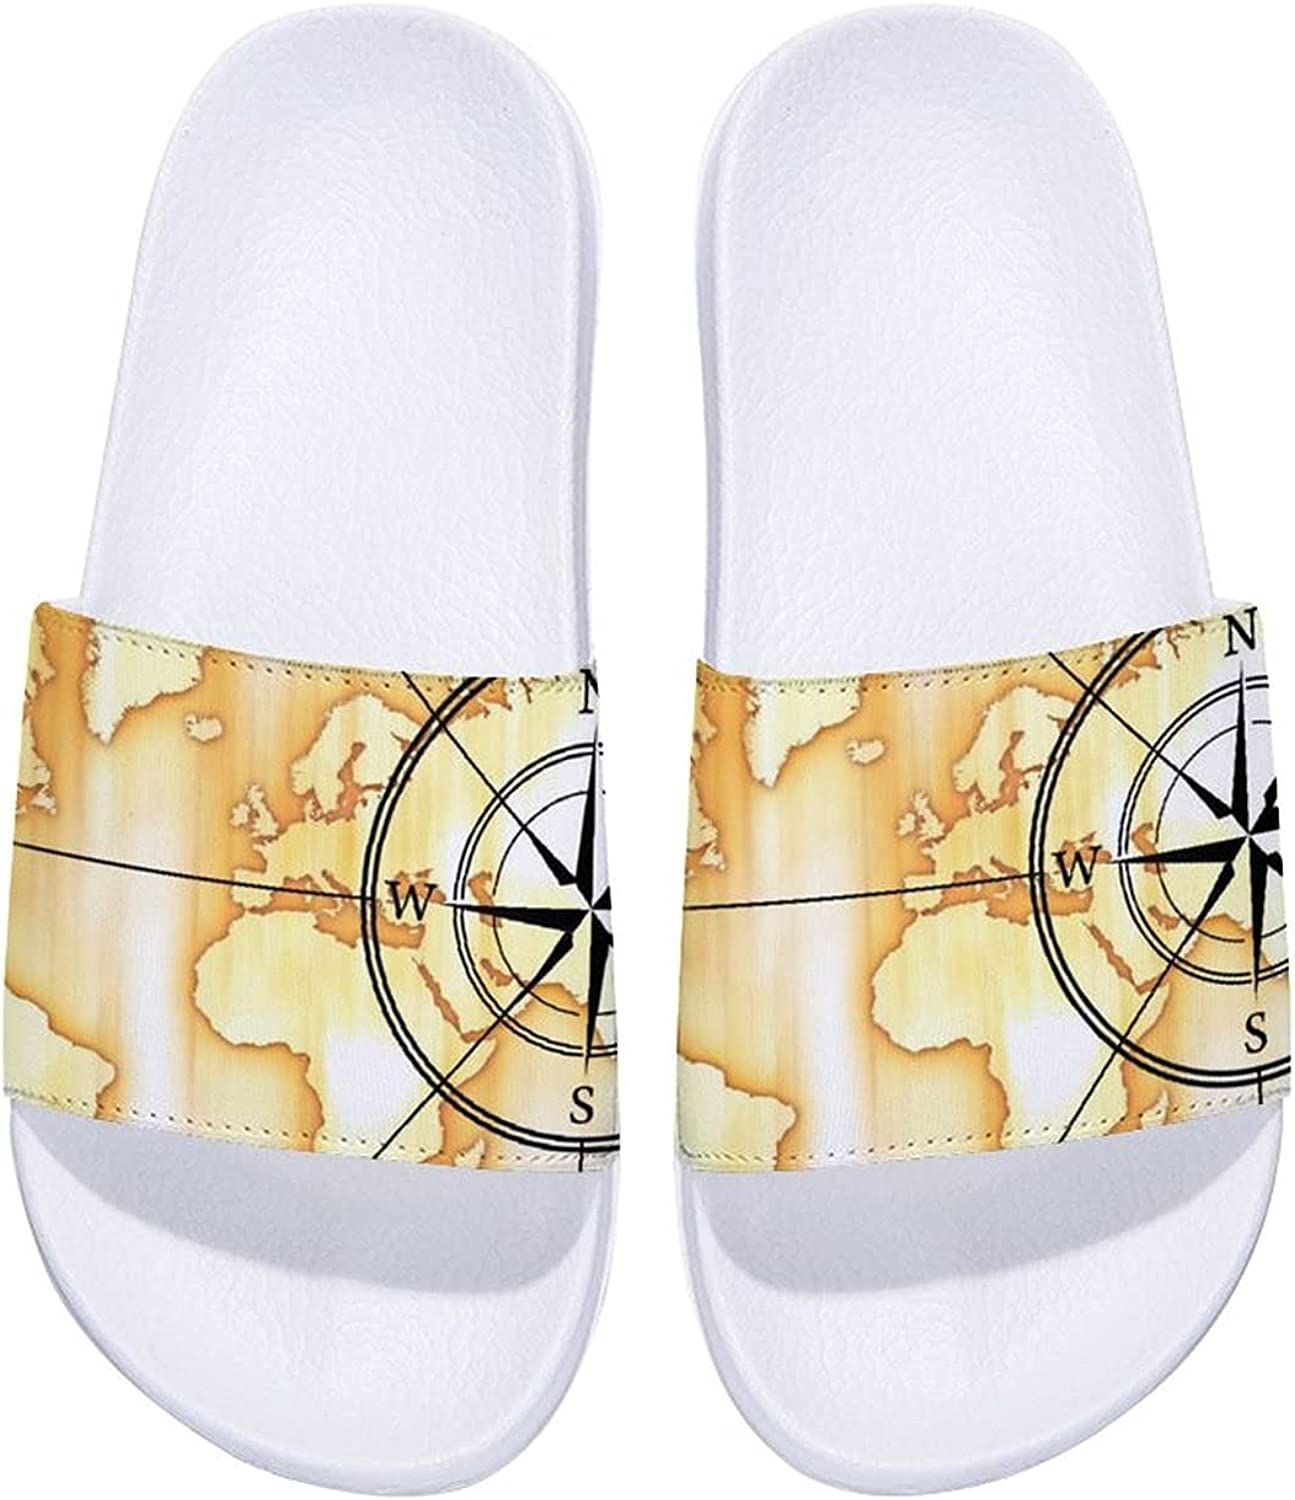 Compass with World Map Men's and Free Shipping Cheap Bargain Gift Women's Comfort Slide Sandals I Nippon regular agency